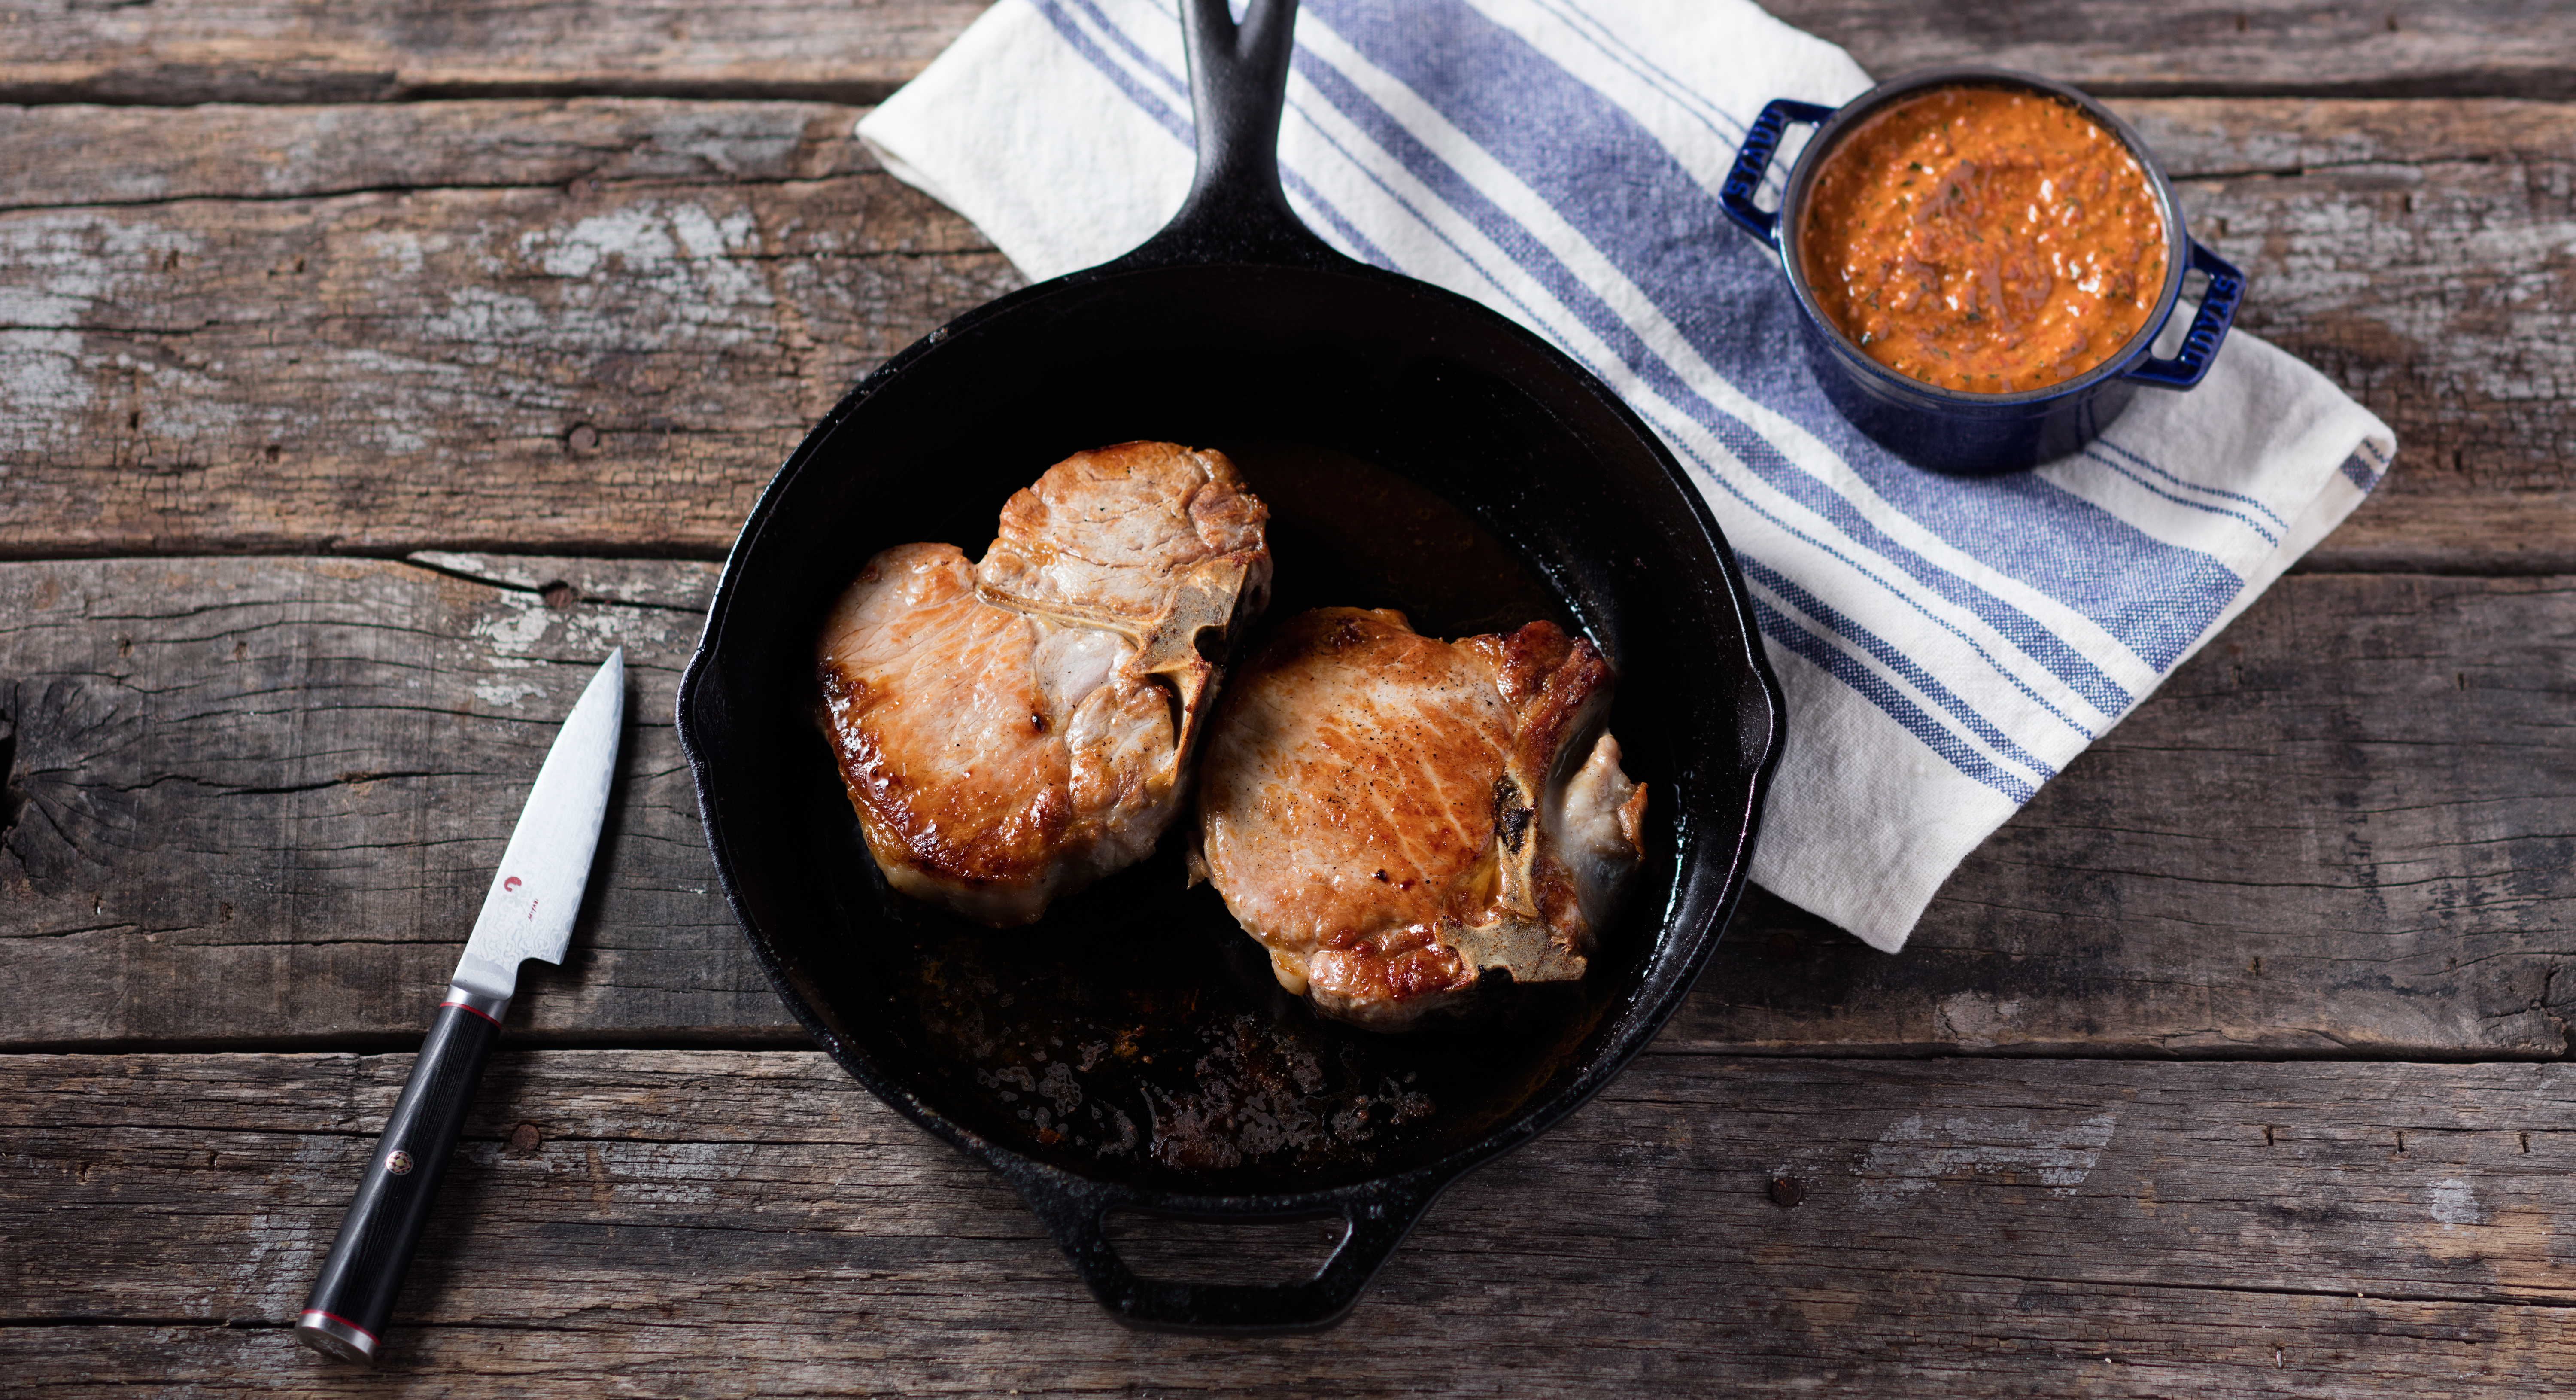 Smoky Walnut Romesco Sauce Elevates Pork Chops In This Simple Recipe